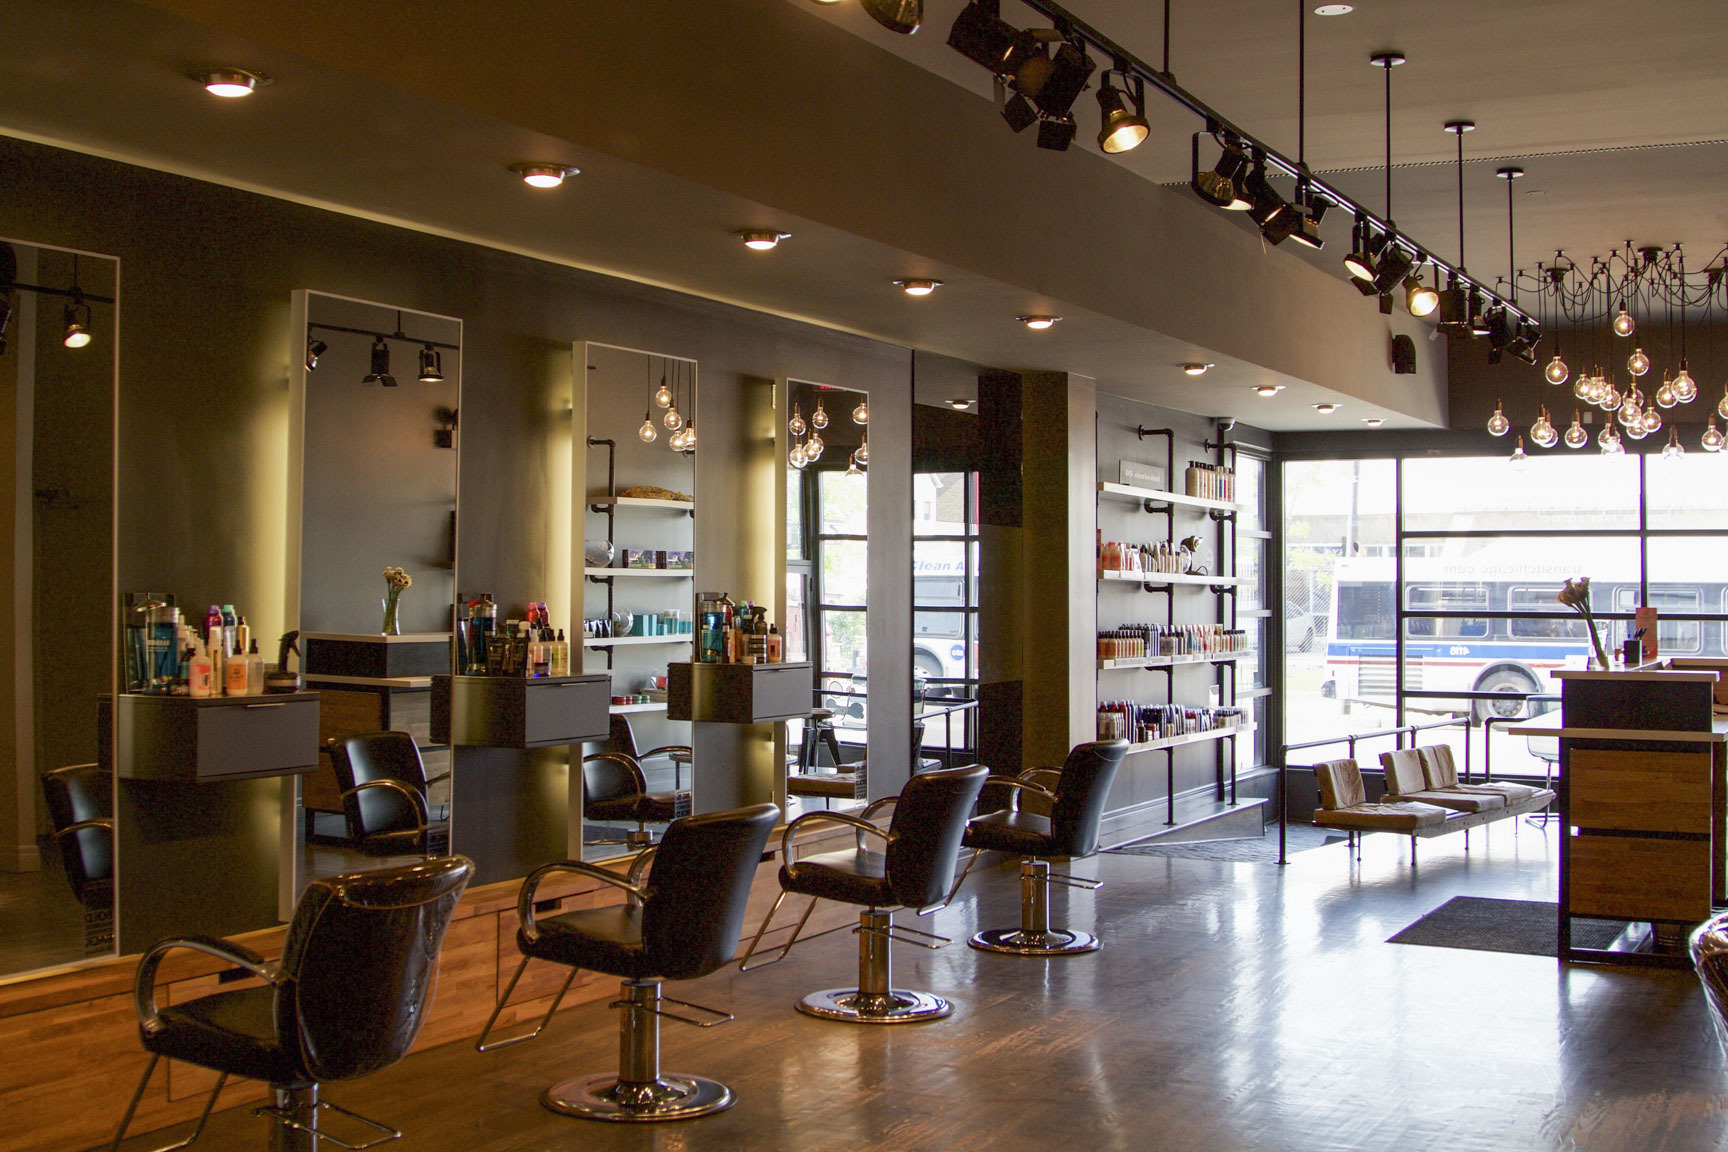 Hair salons in chicago for hair cuts color and blowouts for A beautiful you salon